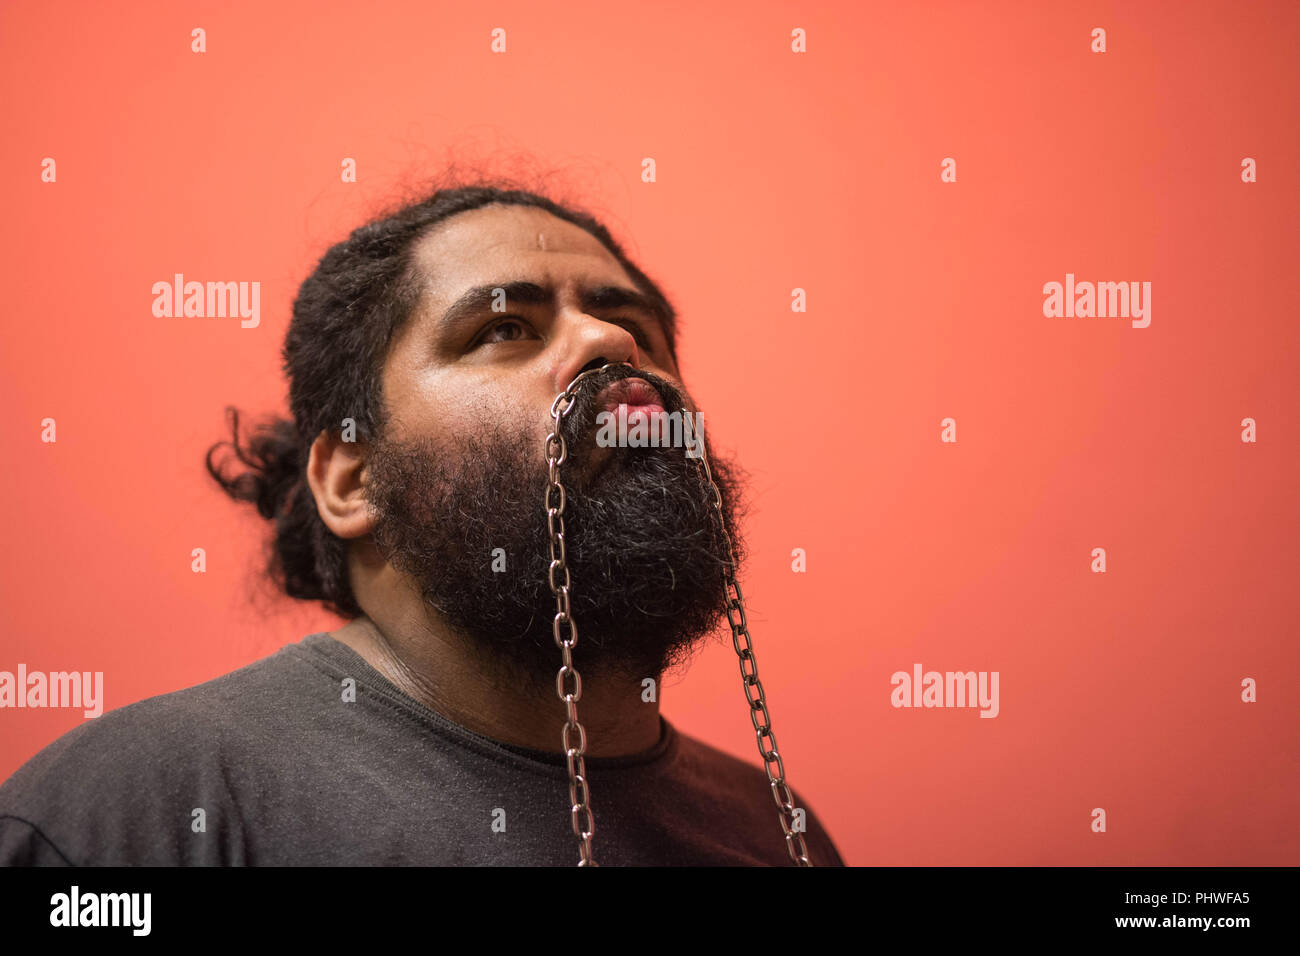 Bearded man holding up a chain in his face - Stock Image